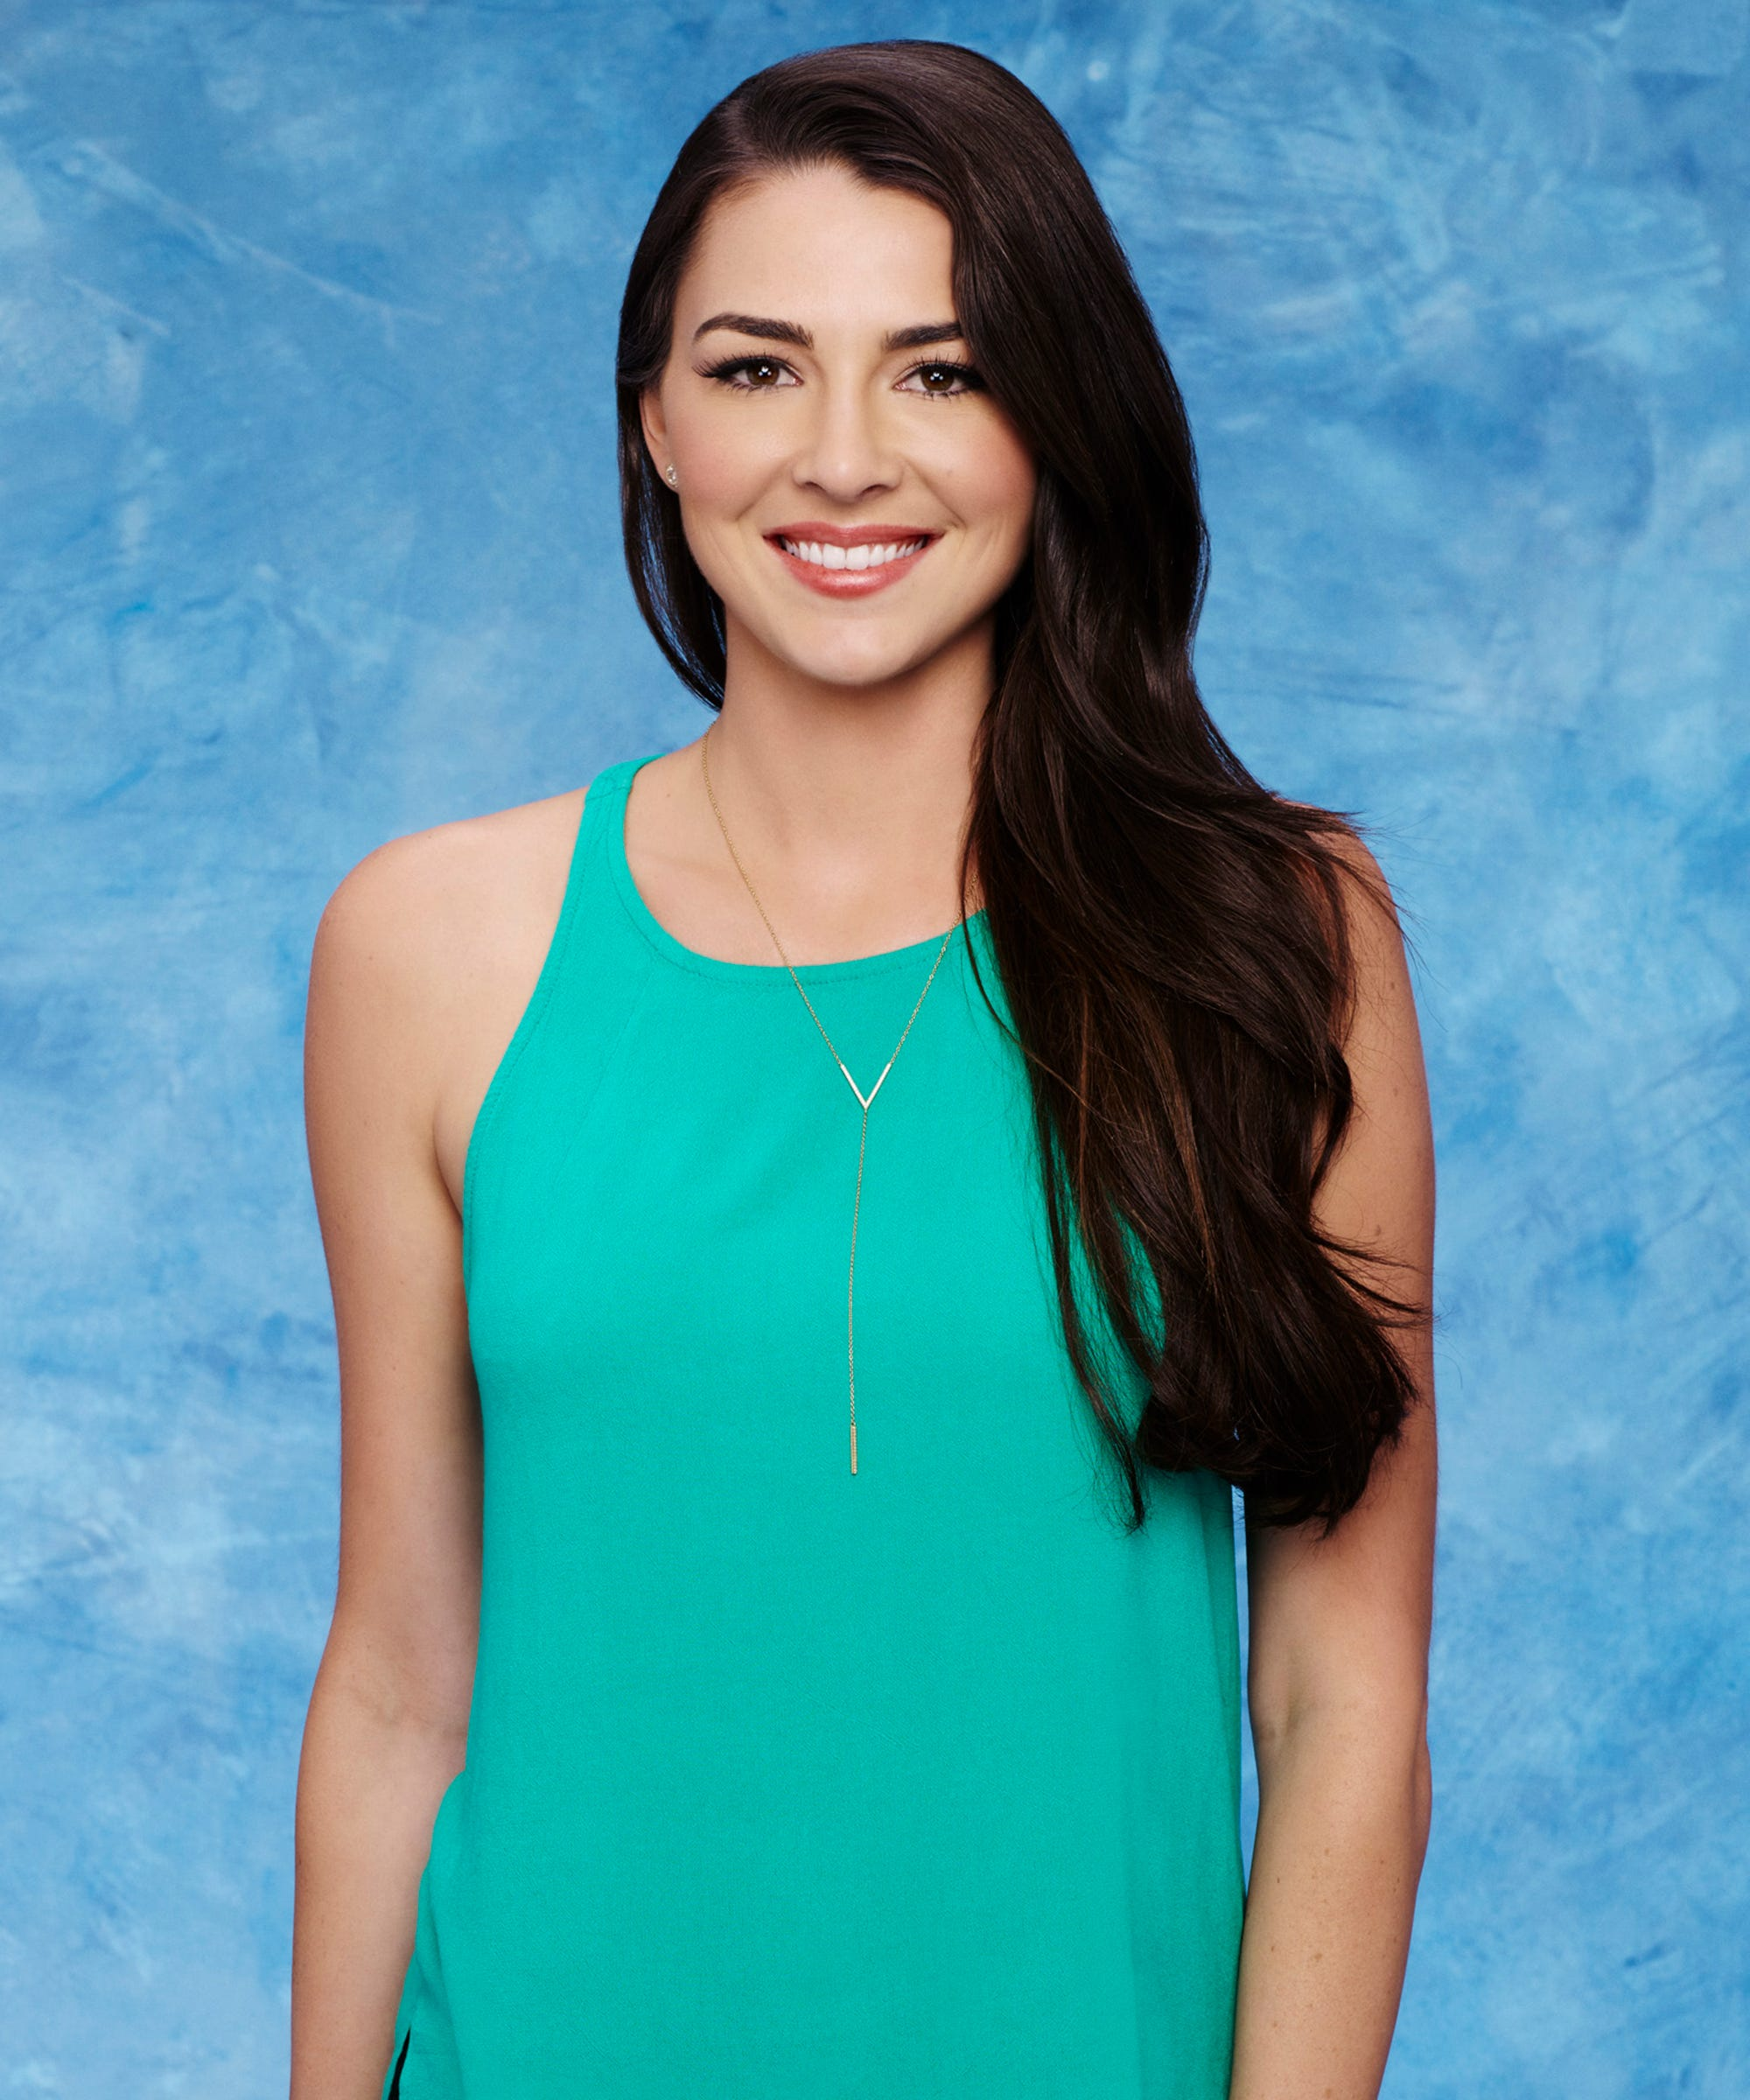 What Happened To Jen Saviano On Bachelor In Paradise, In Case You Forgot